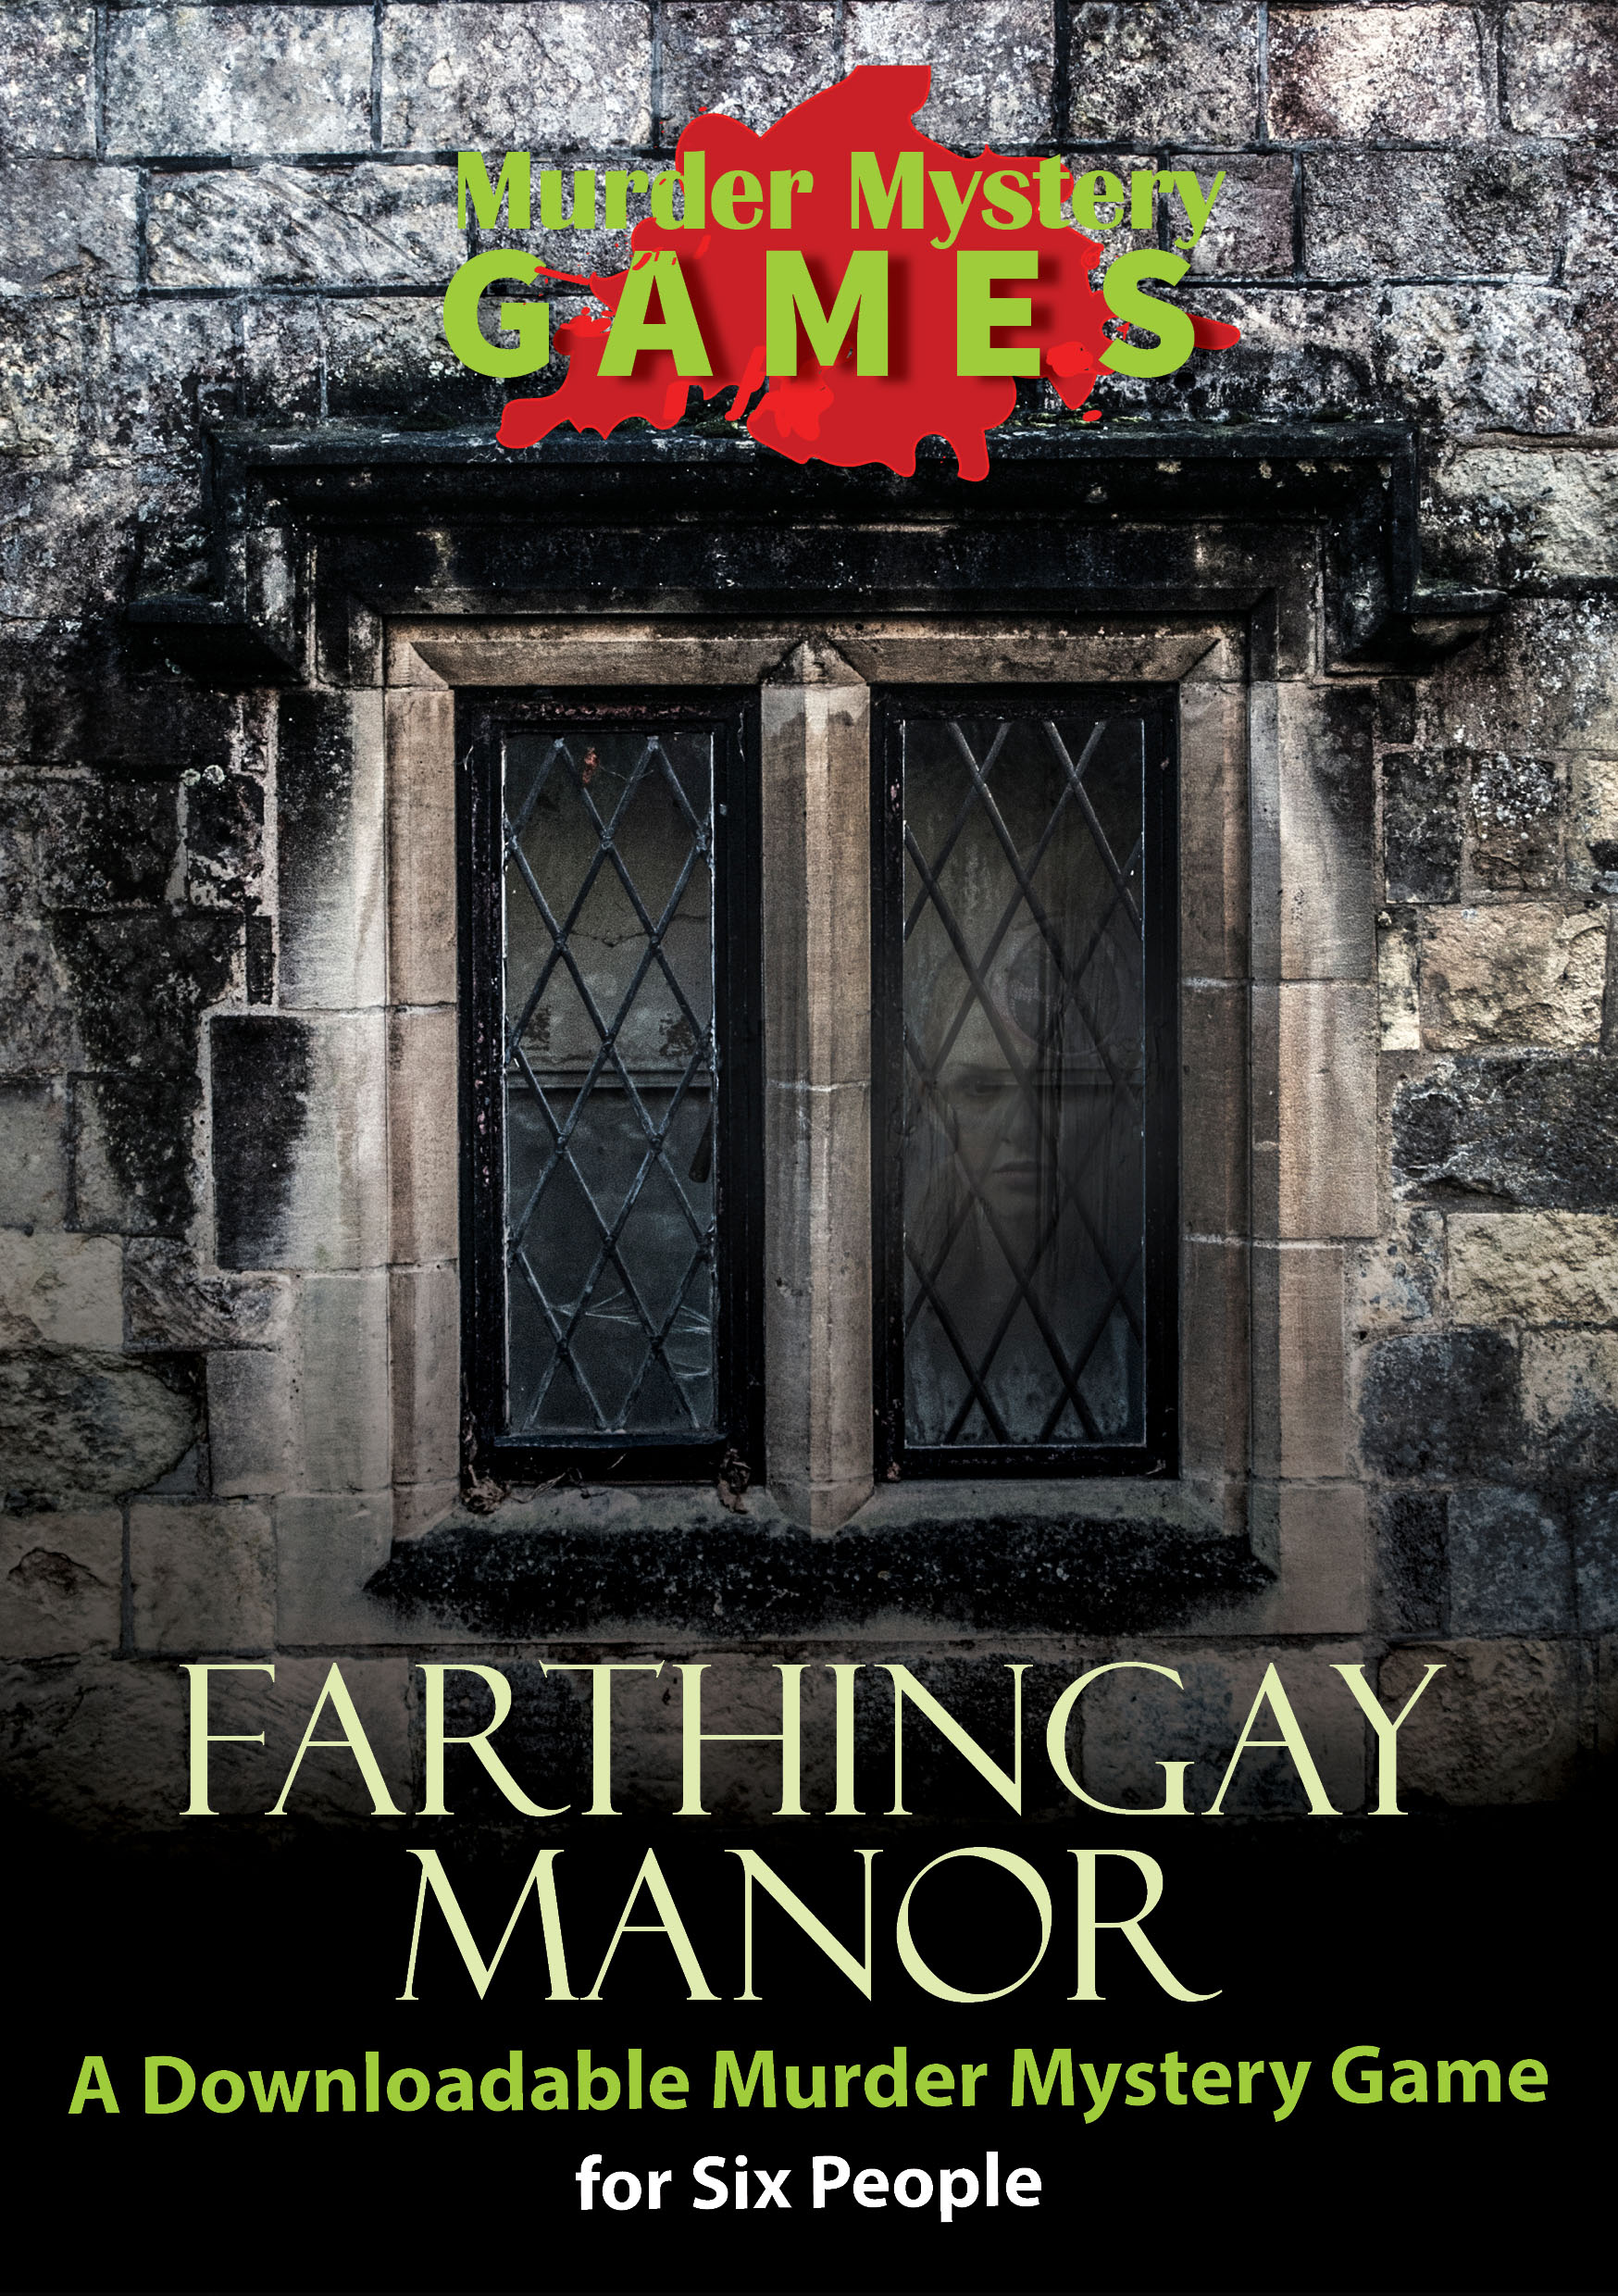 Farthingay Manor - A downloadable 1920s Murder Mystery